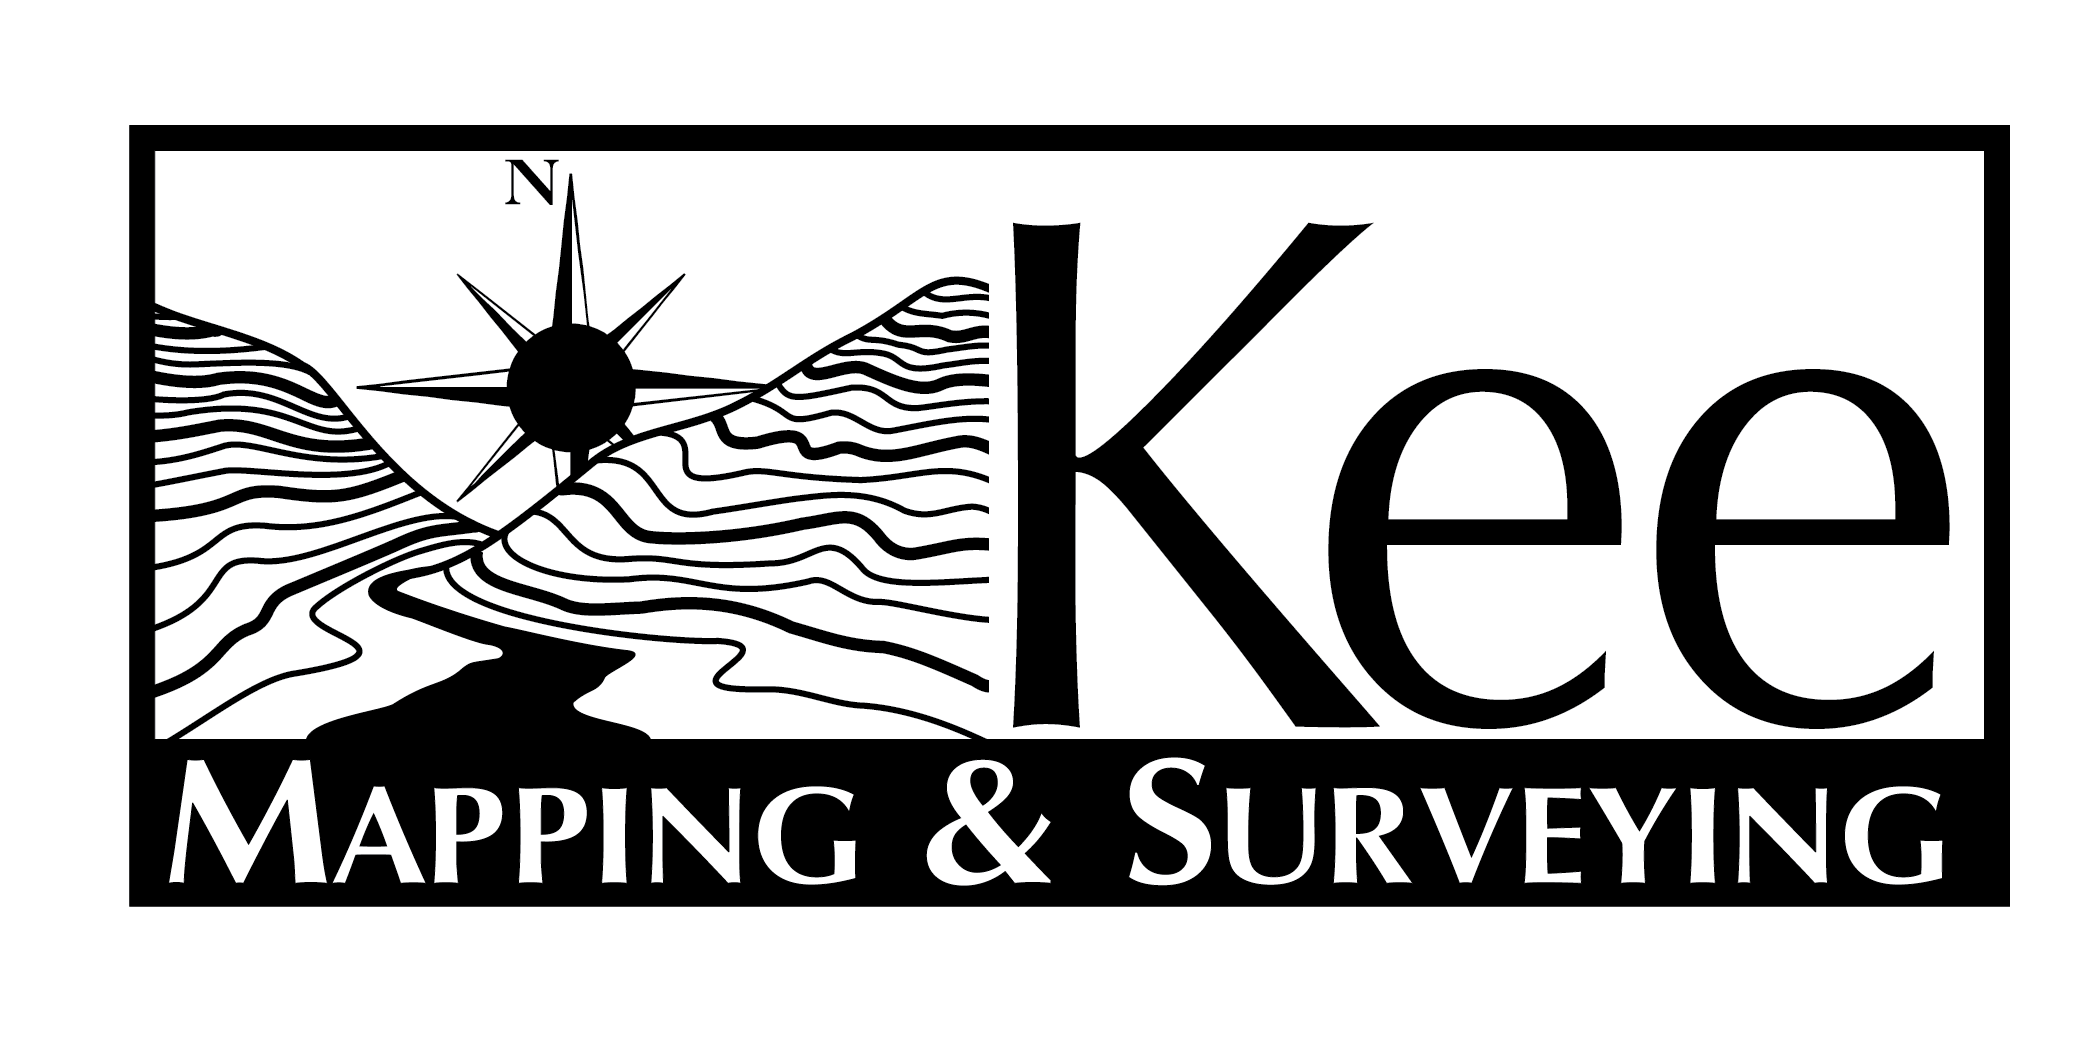 Kee Mapping and Surveying logo